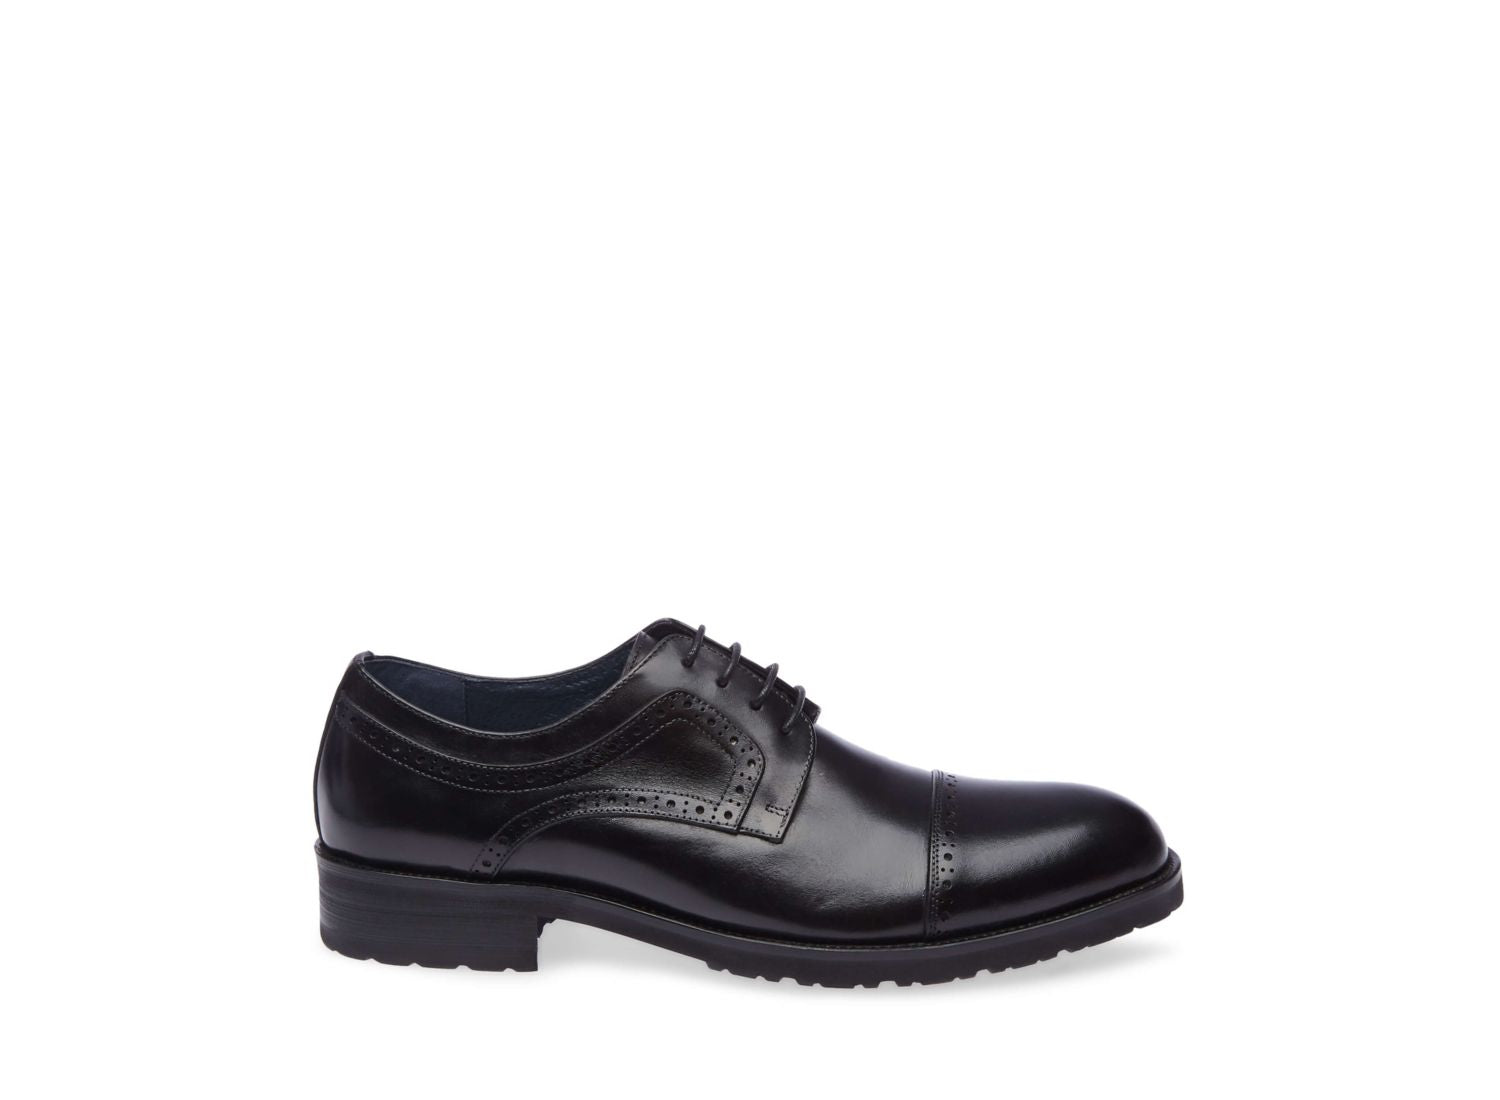 WEBBER BLACK LEATHER - Steve Madden